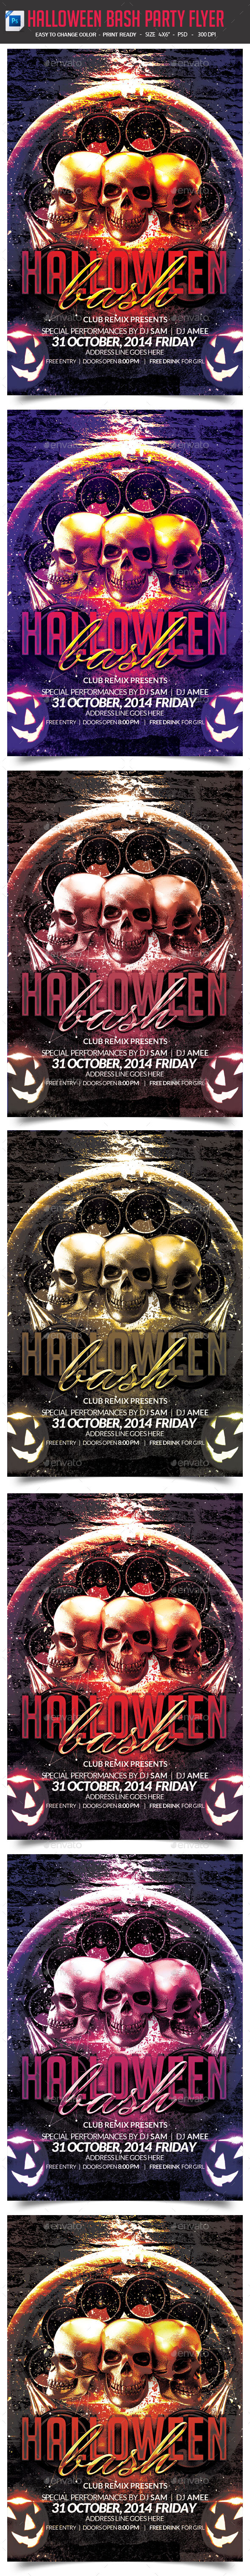 Halloween Bash Party Flyer - Clubs & Parties Events